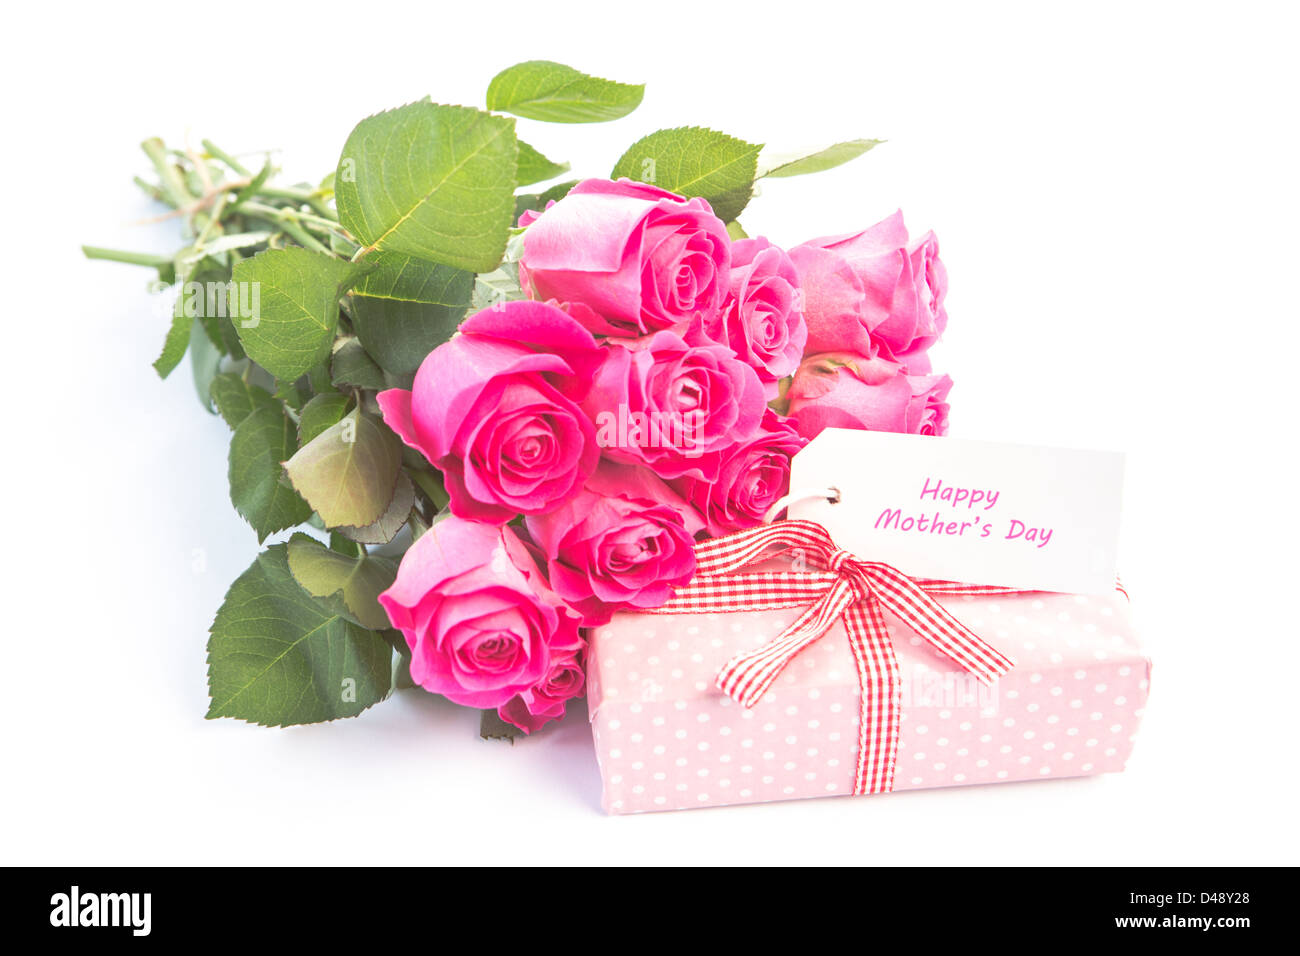 Bouquet of pink roses next to a gift with a happy birthday card – Birthday Greetings with Roses